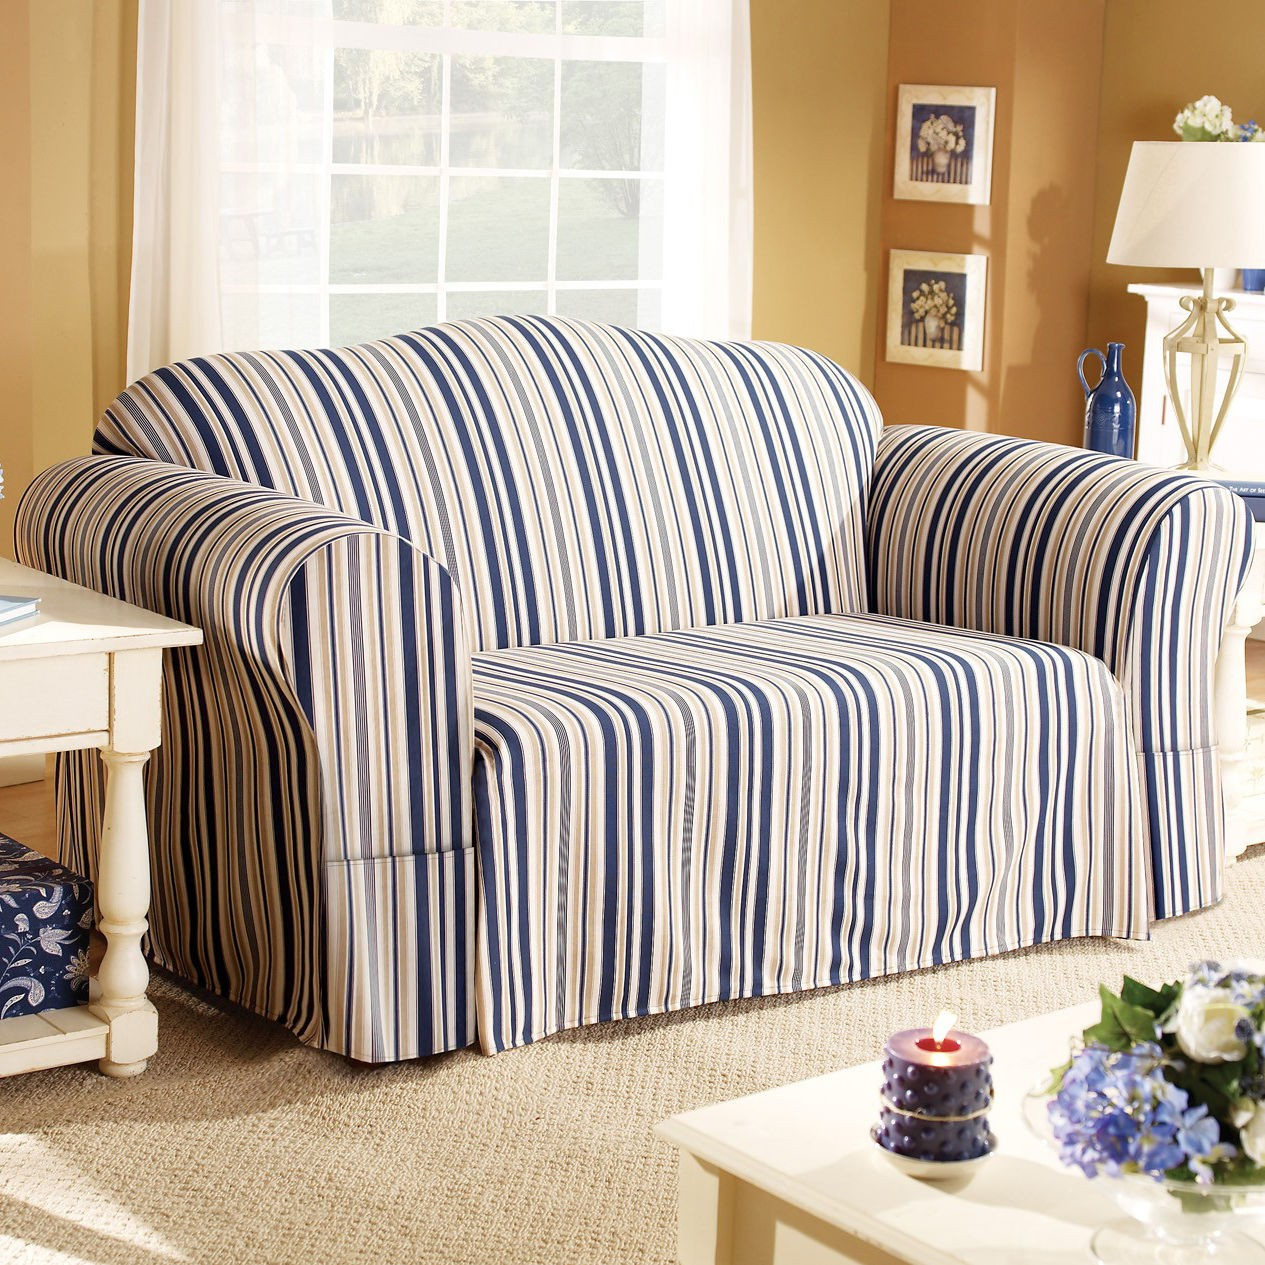 Black And White Striped Couch HomesFeed